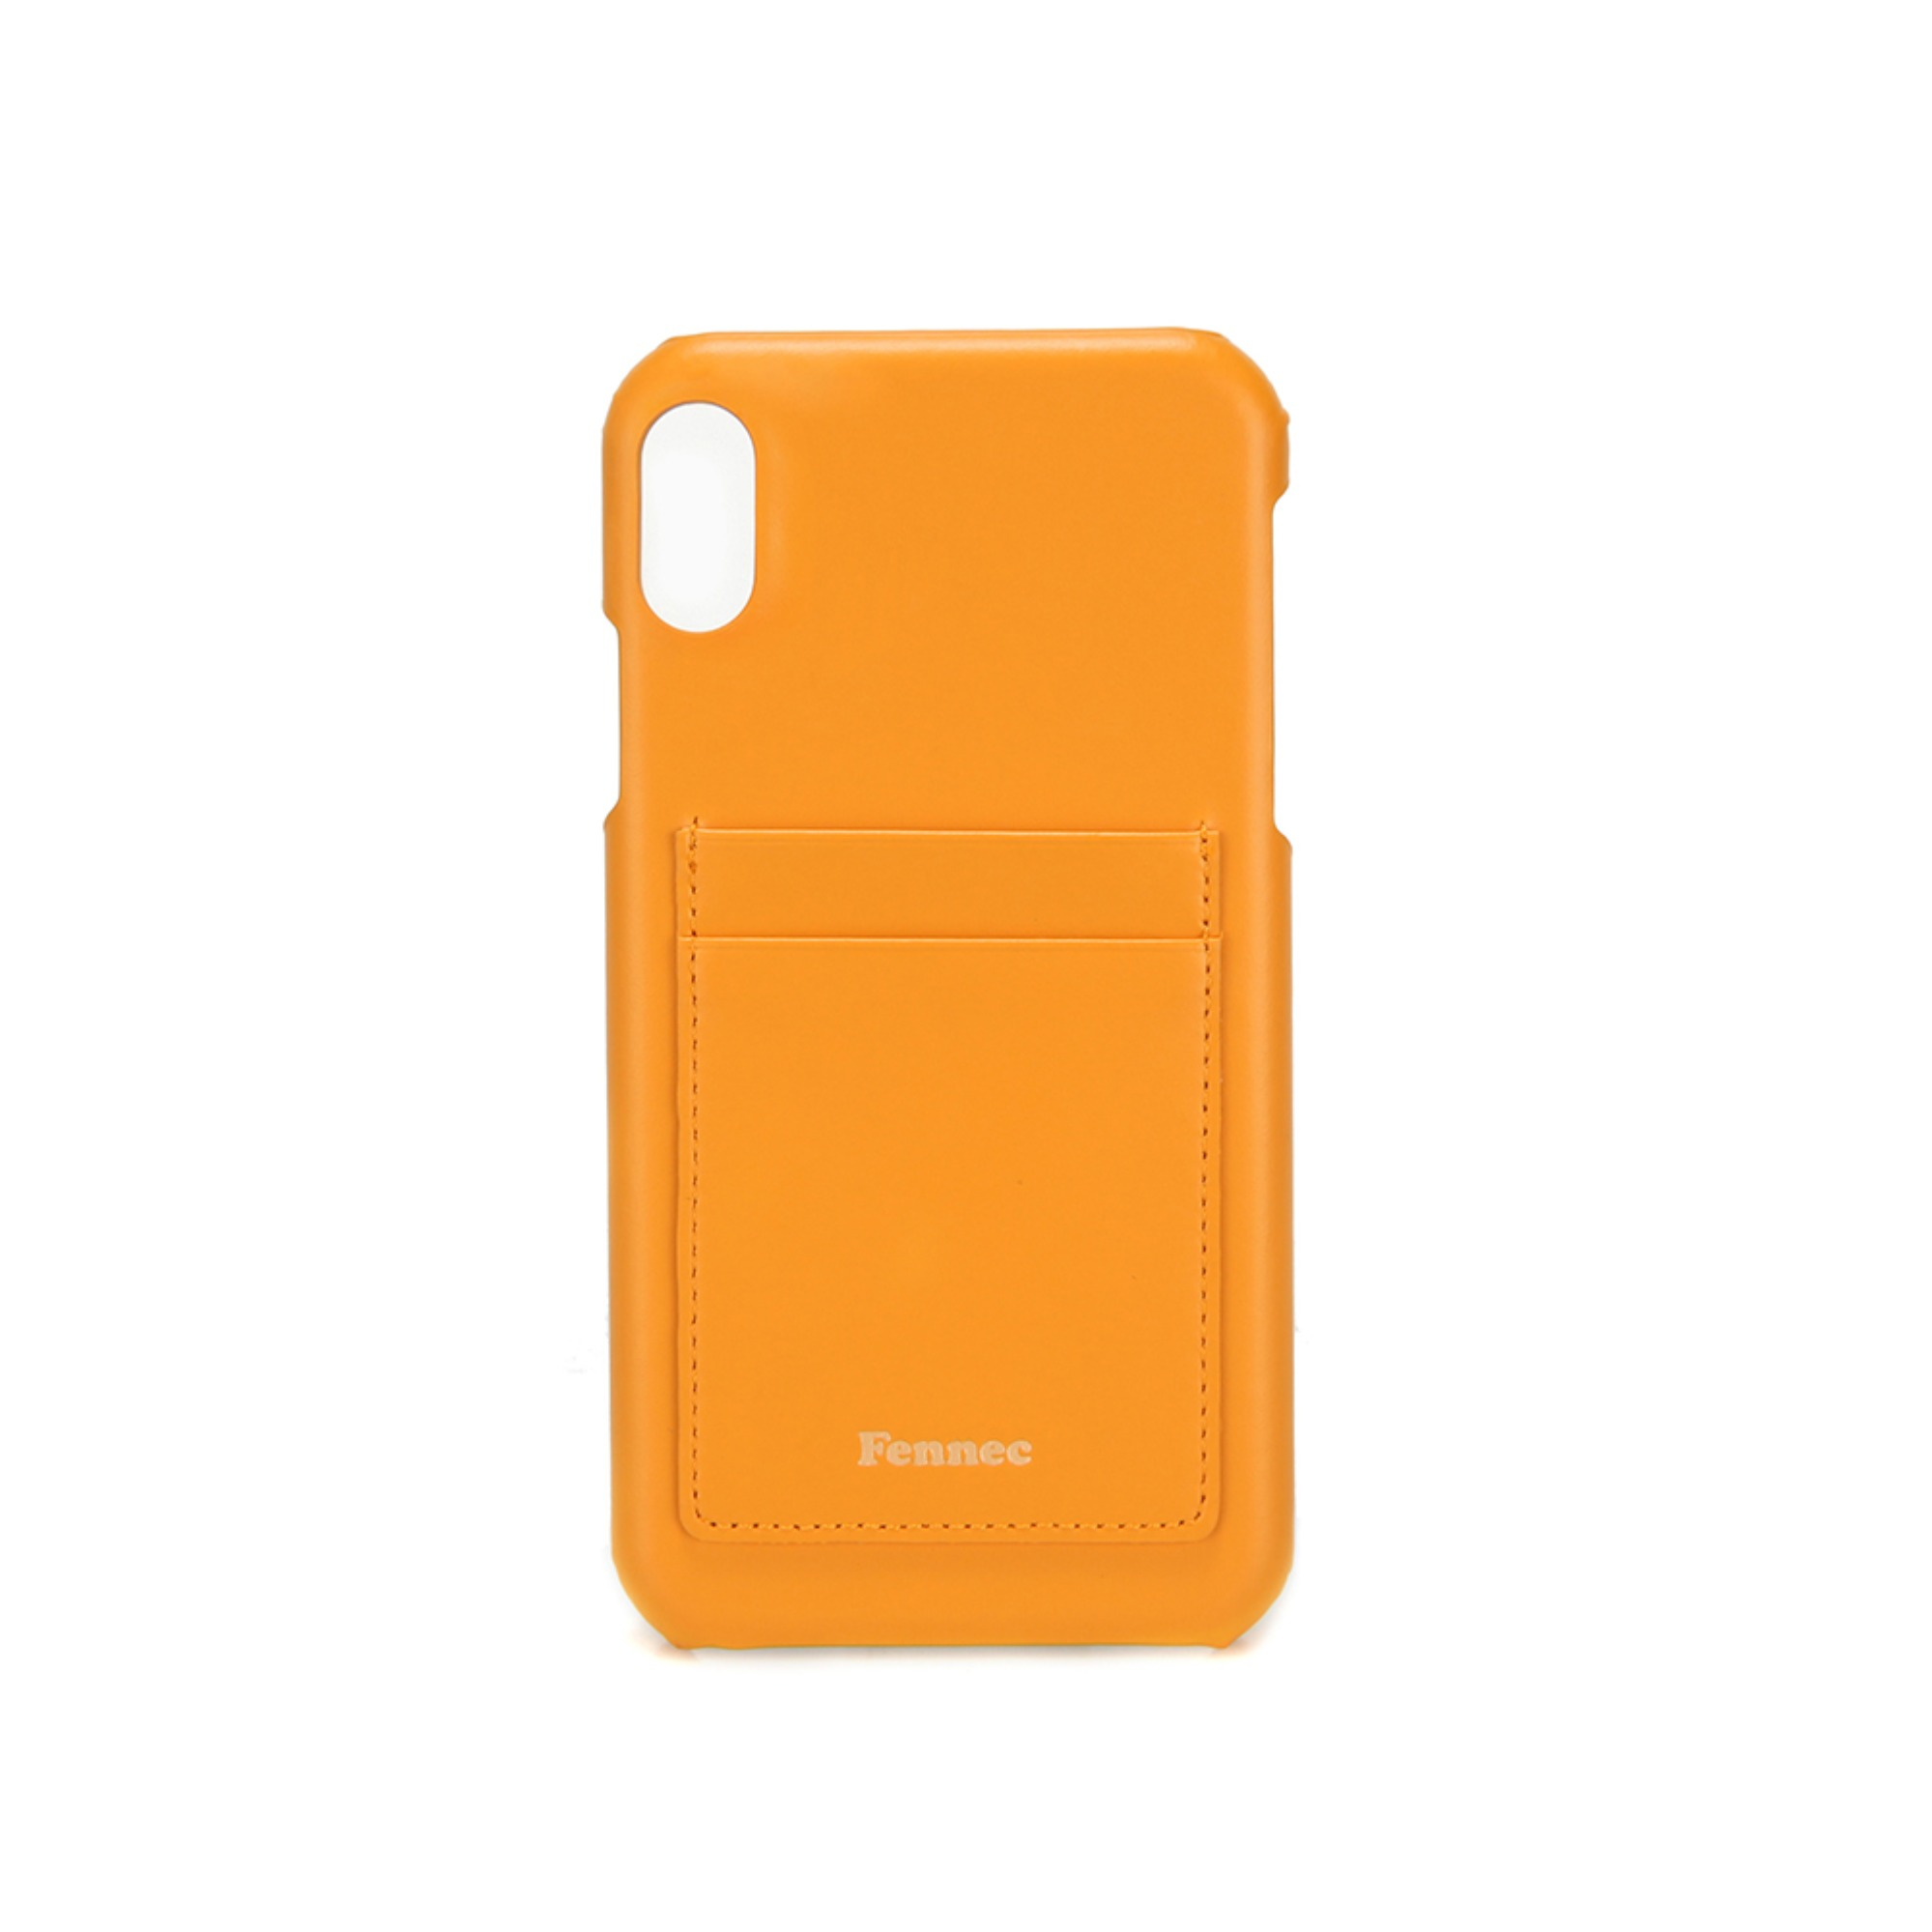 [DISCONTINUE] LEATHER iPHONE XR CARD CASE - MANDARIN